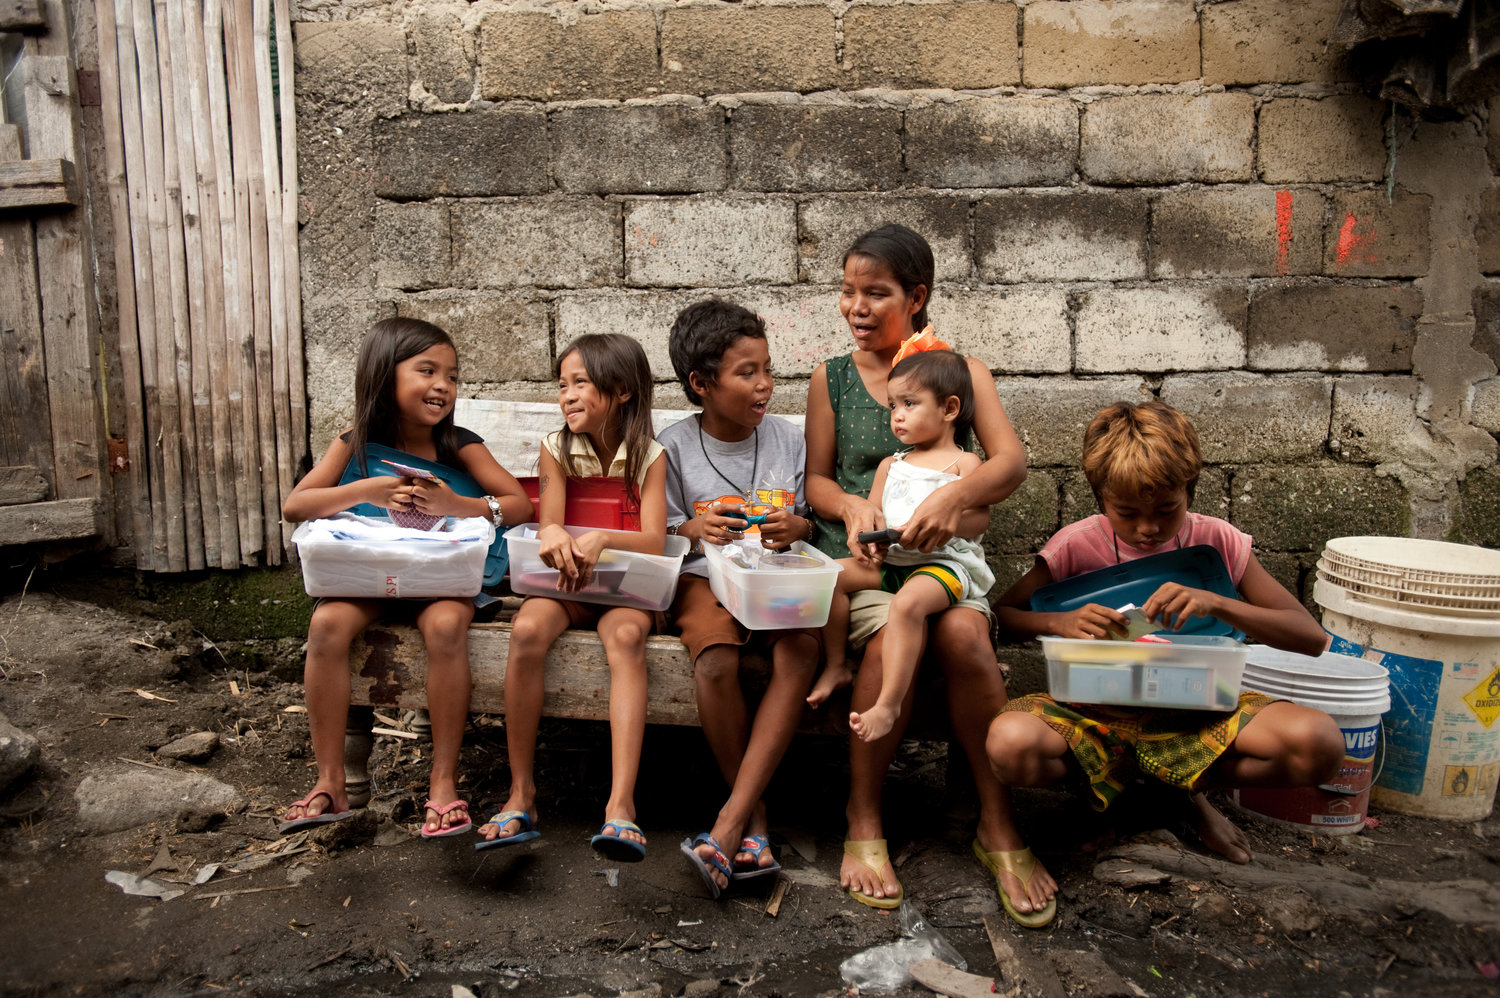 An Operation Christmas Child shoebox distribution in the Philippines. National Collection Week is Nov. 12-19.